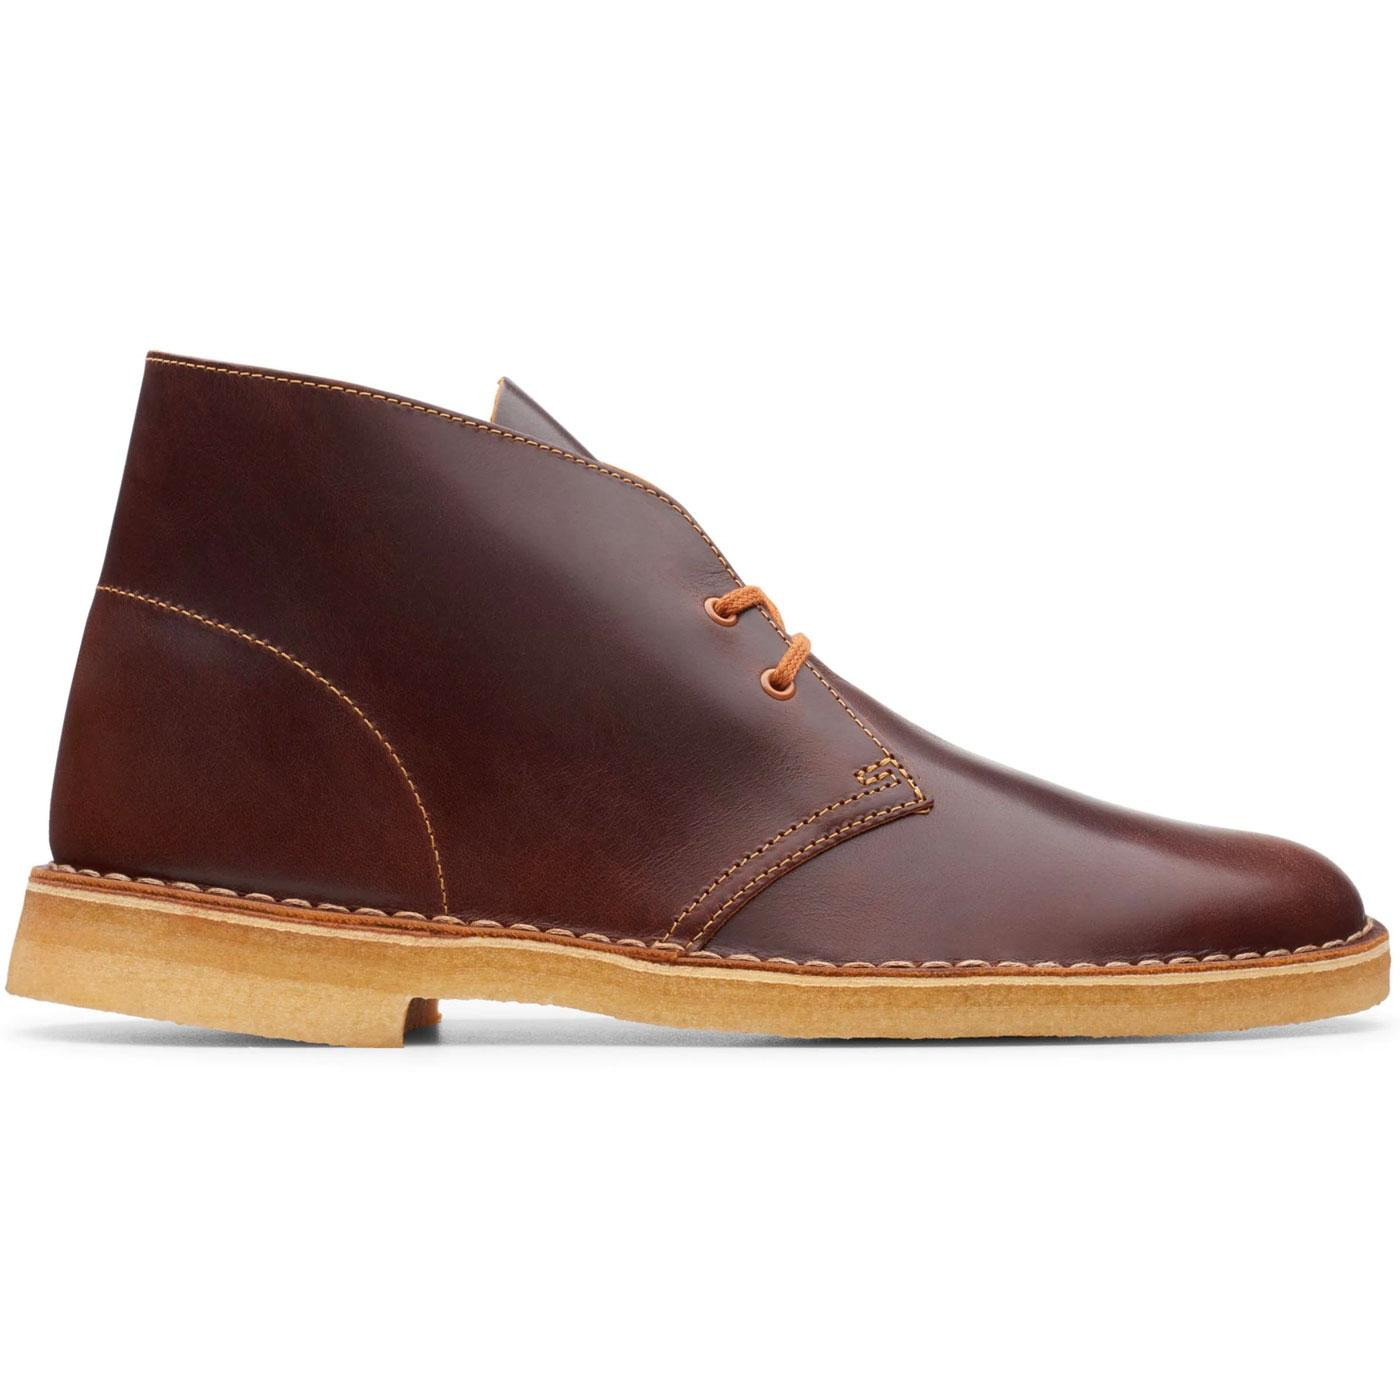 CLARKS ORIGINALS Mod Leather Desert Boots (Tan)